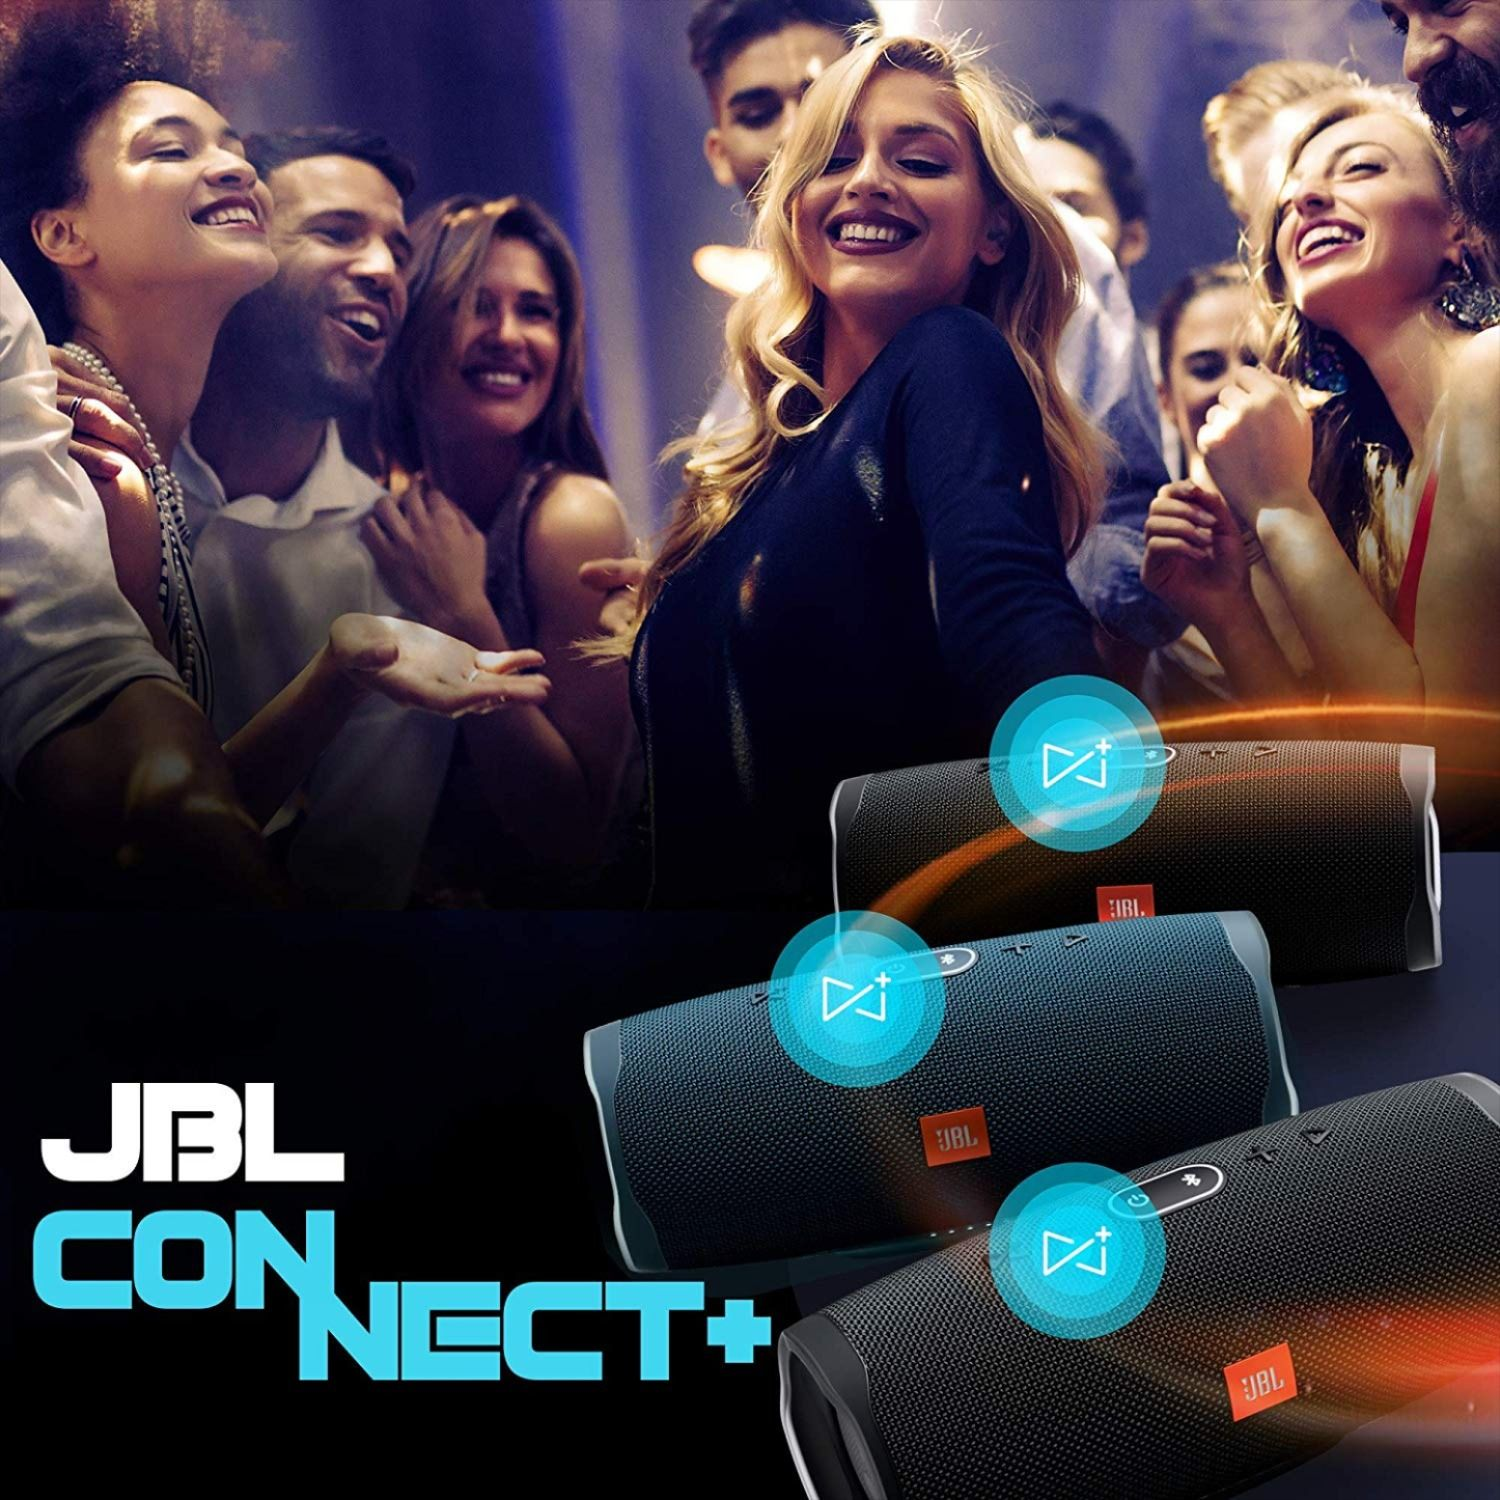 how to connect jbl speakers to laptop